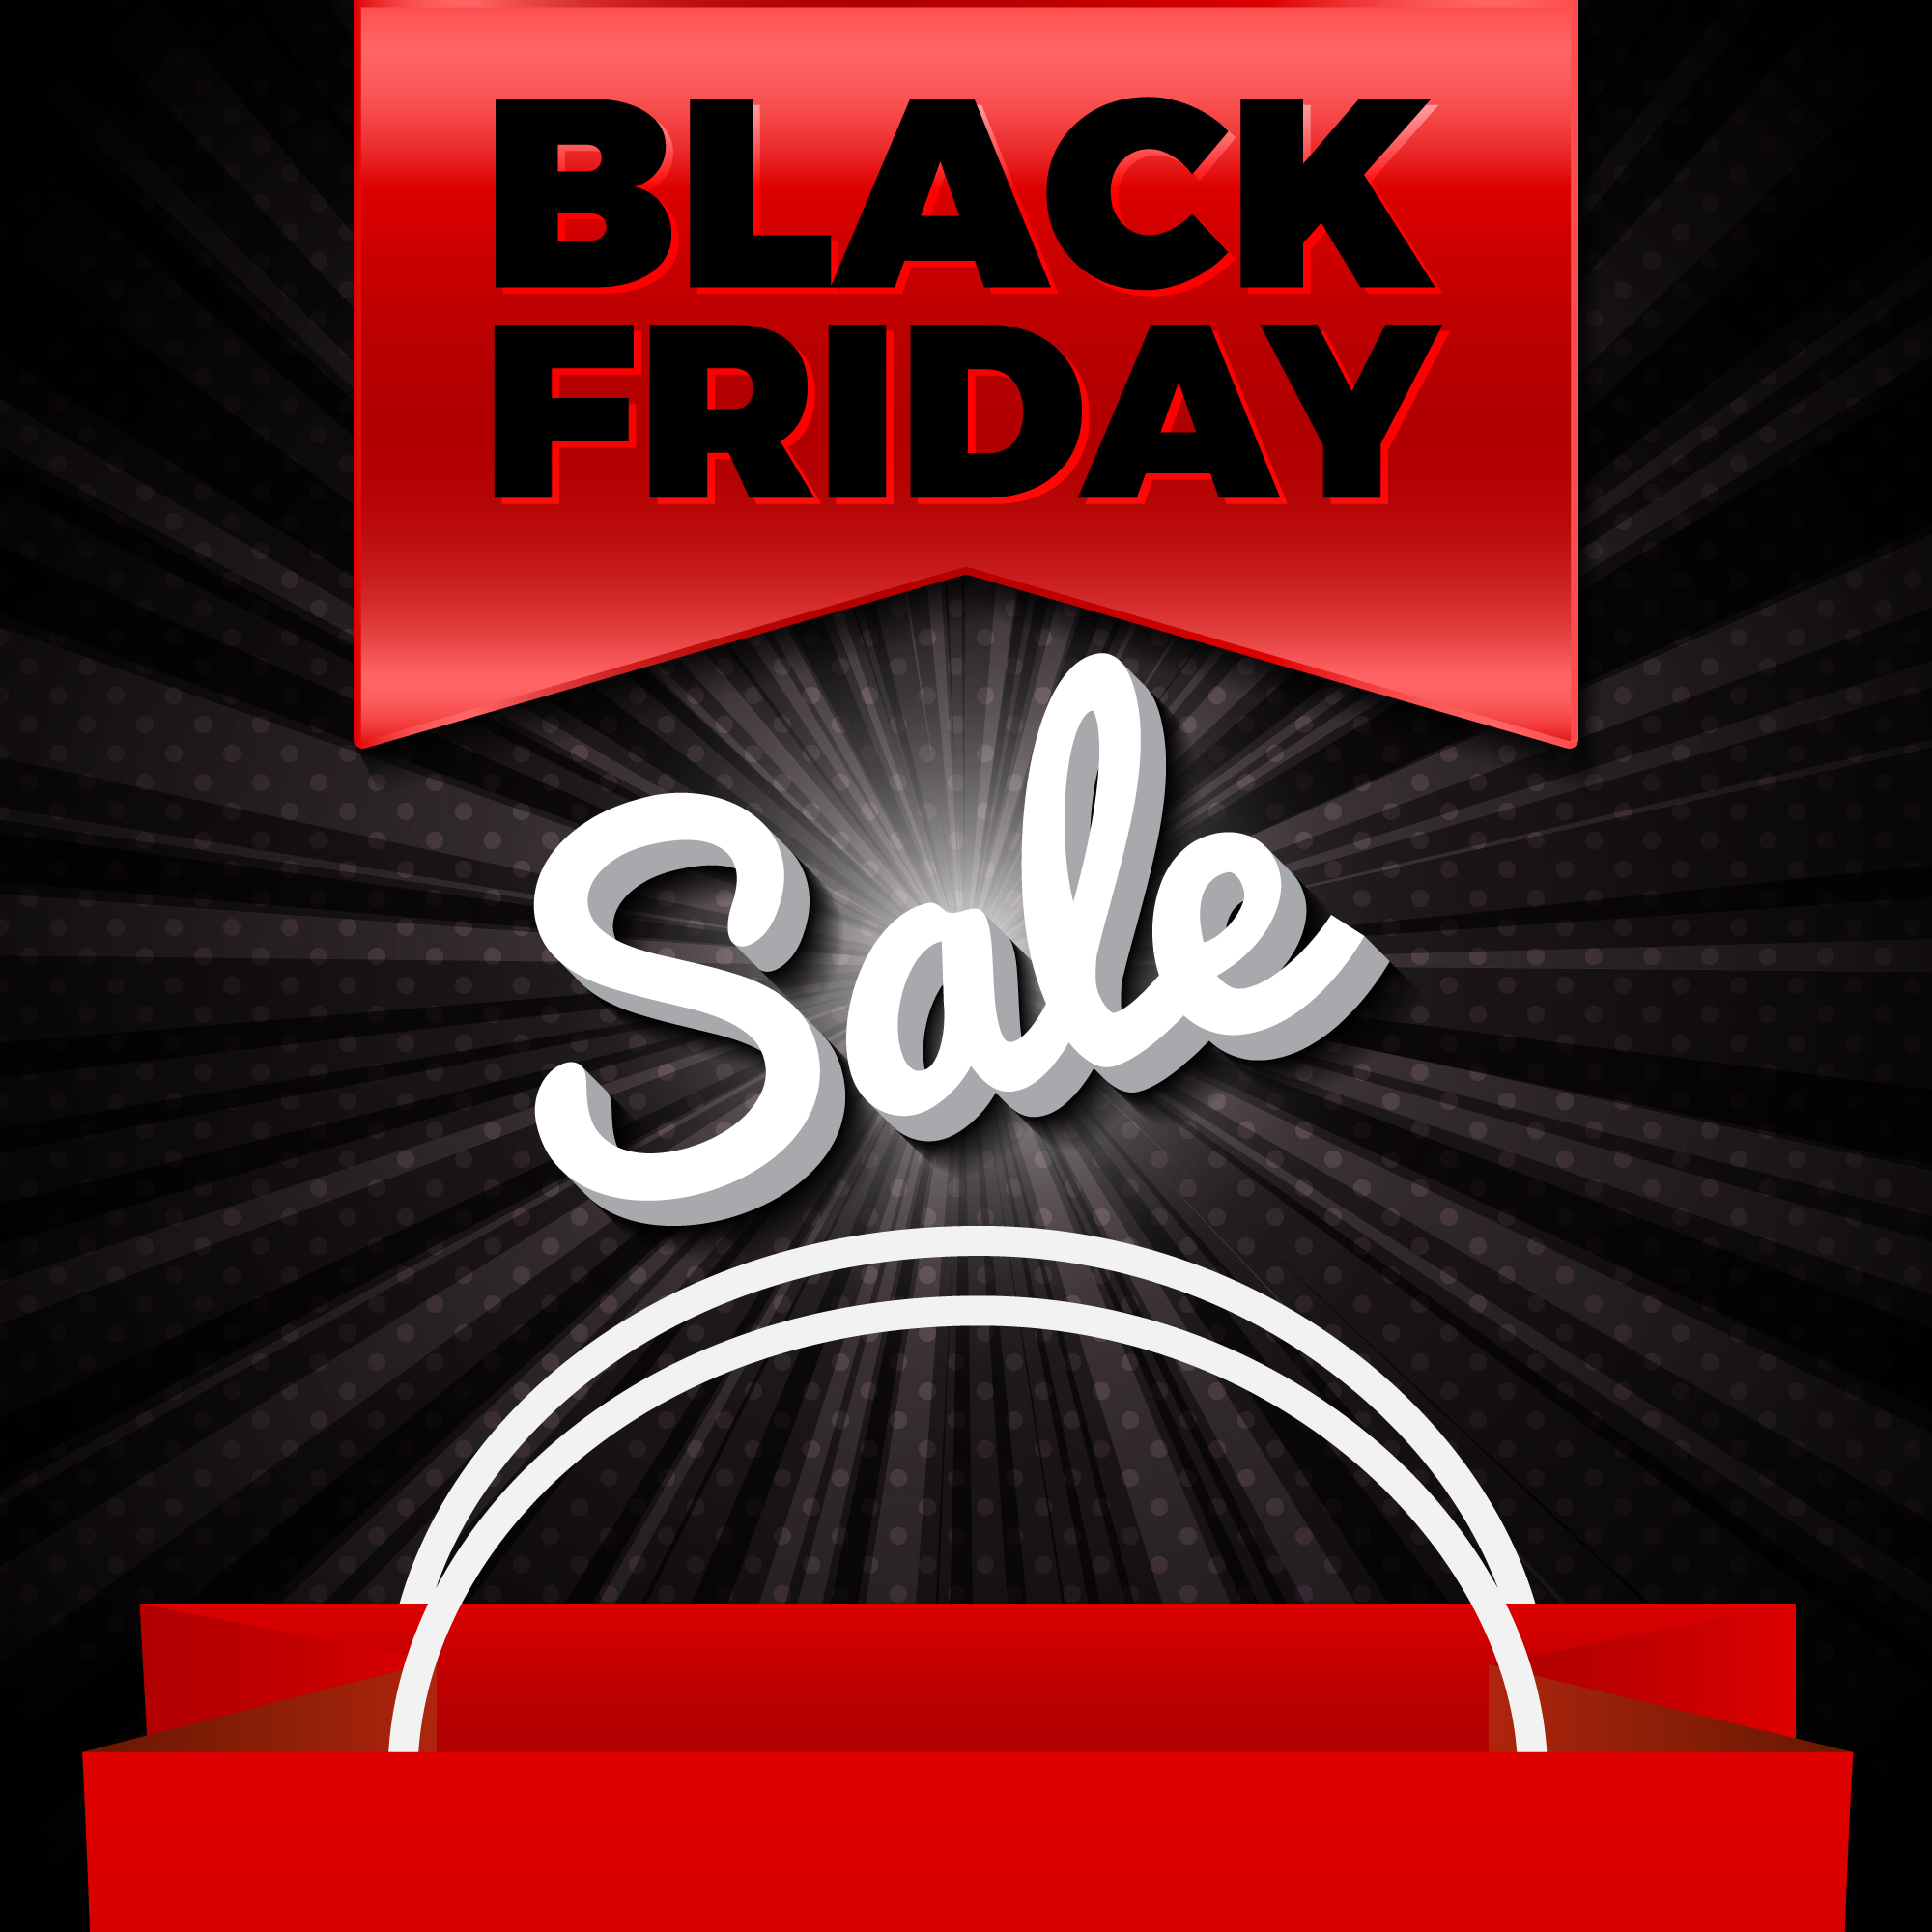 Black Frideay Black Friday Sale Download Free Vector Art Stock